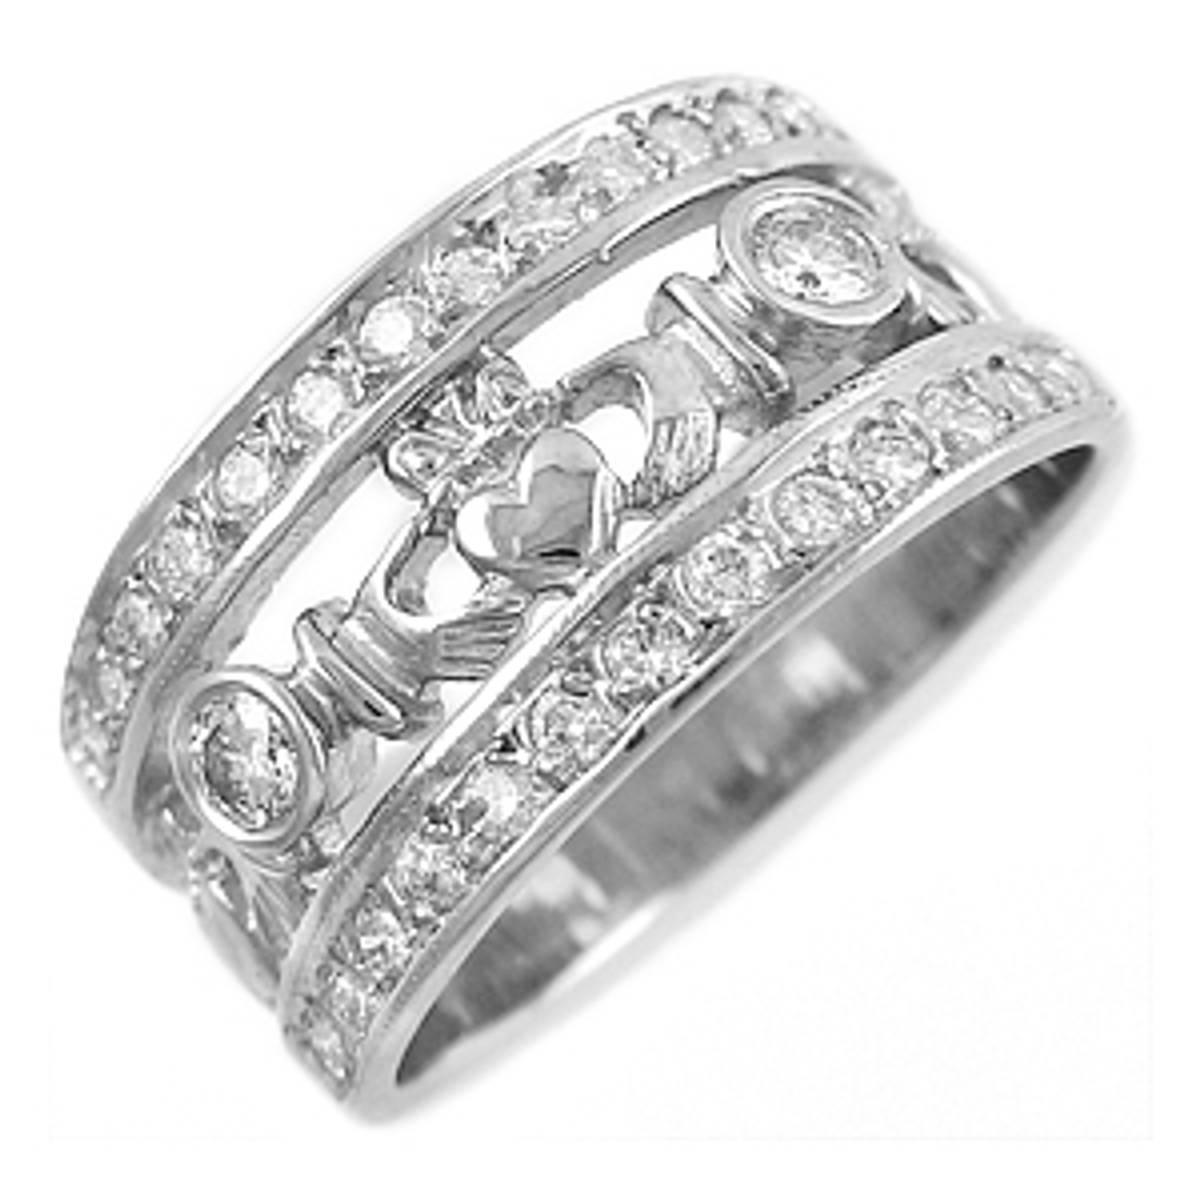 14 carat white gold 0.15cts/0.26cts diamonds claddagh engagement ring